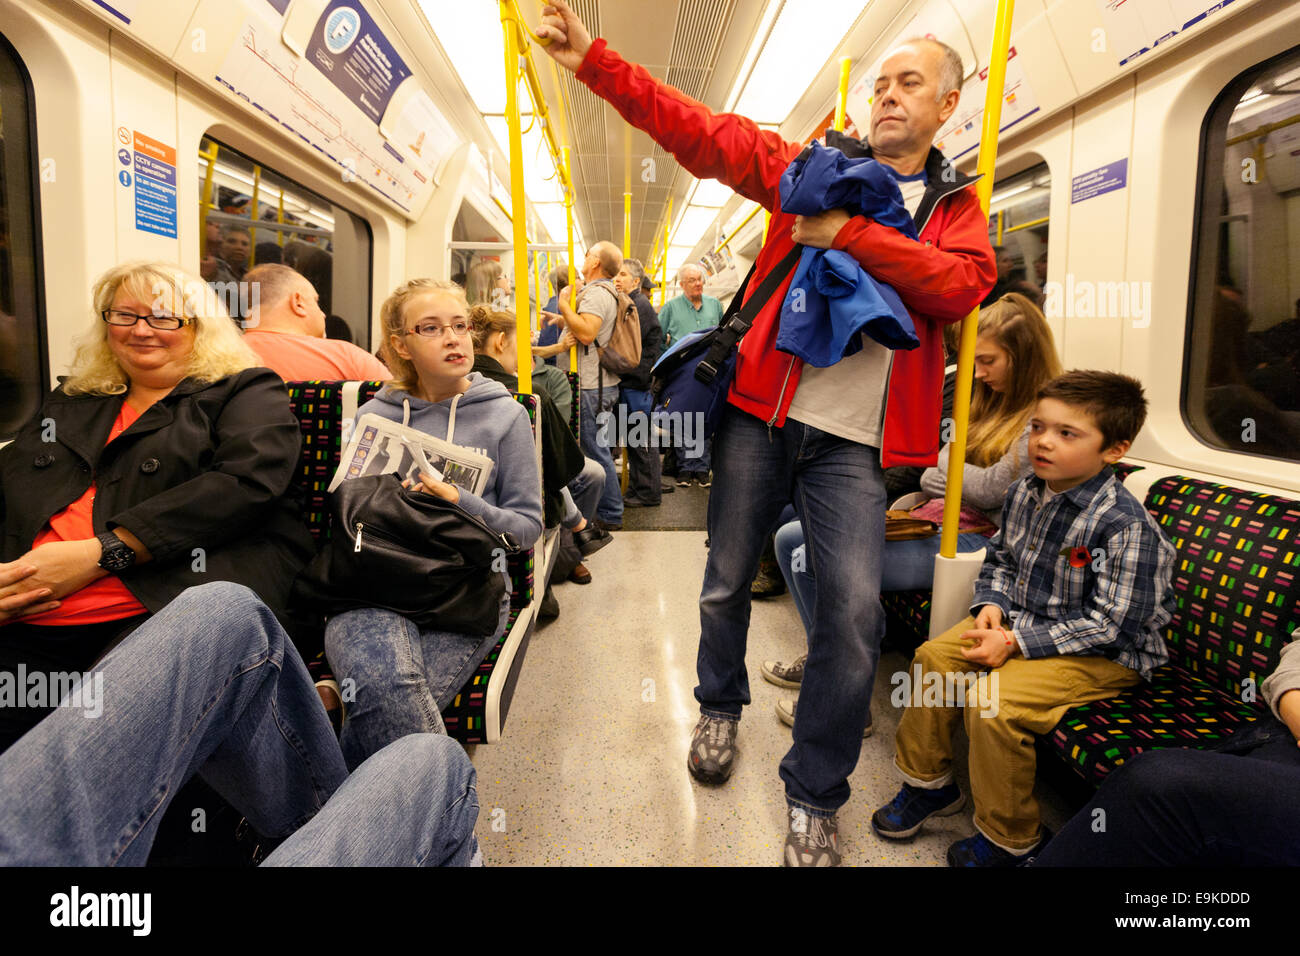 Families with children travelling in a carriage on the London Underground, London UK - Stock Image